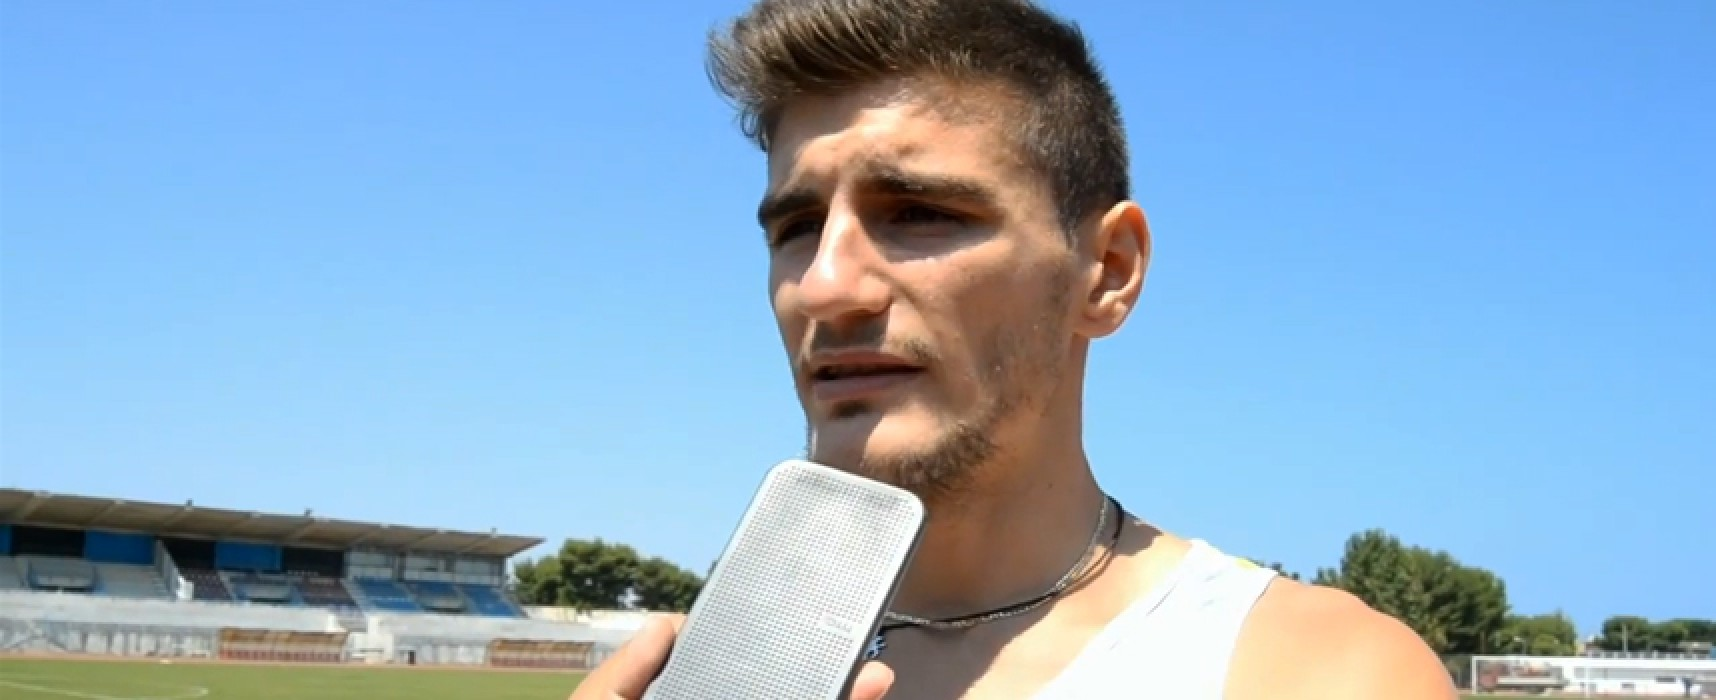 Atletica: ai Campionati Italiani Haliti porta bandiera del quartetto biscegliese/VIDEO